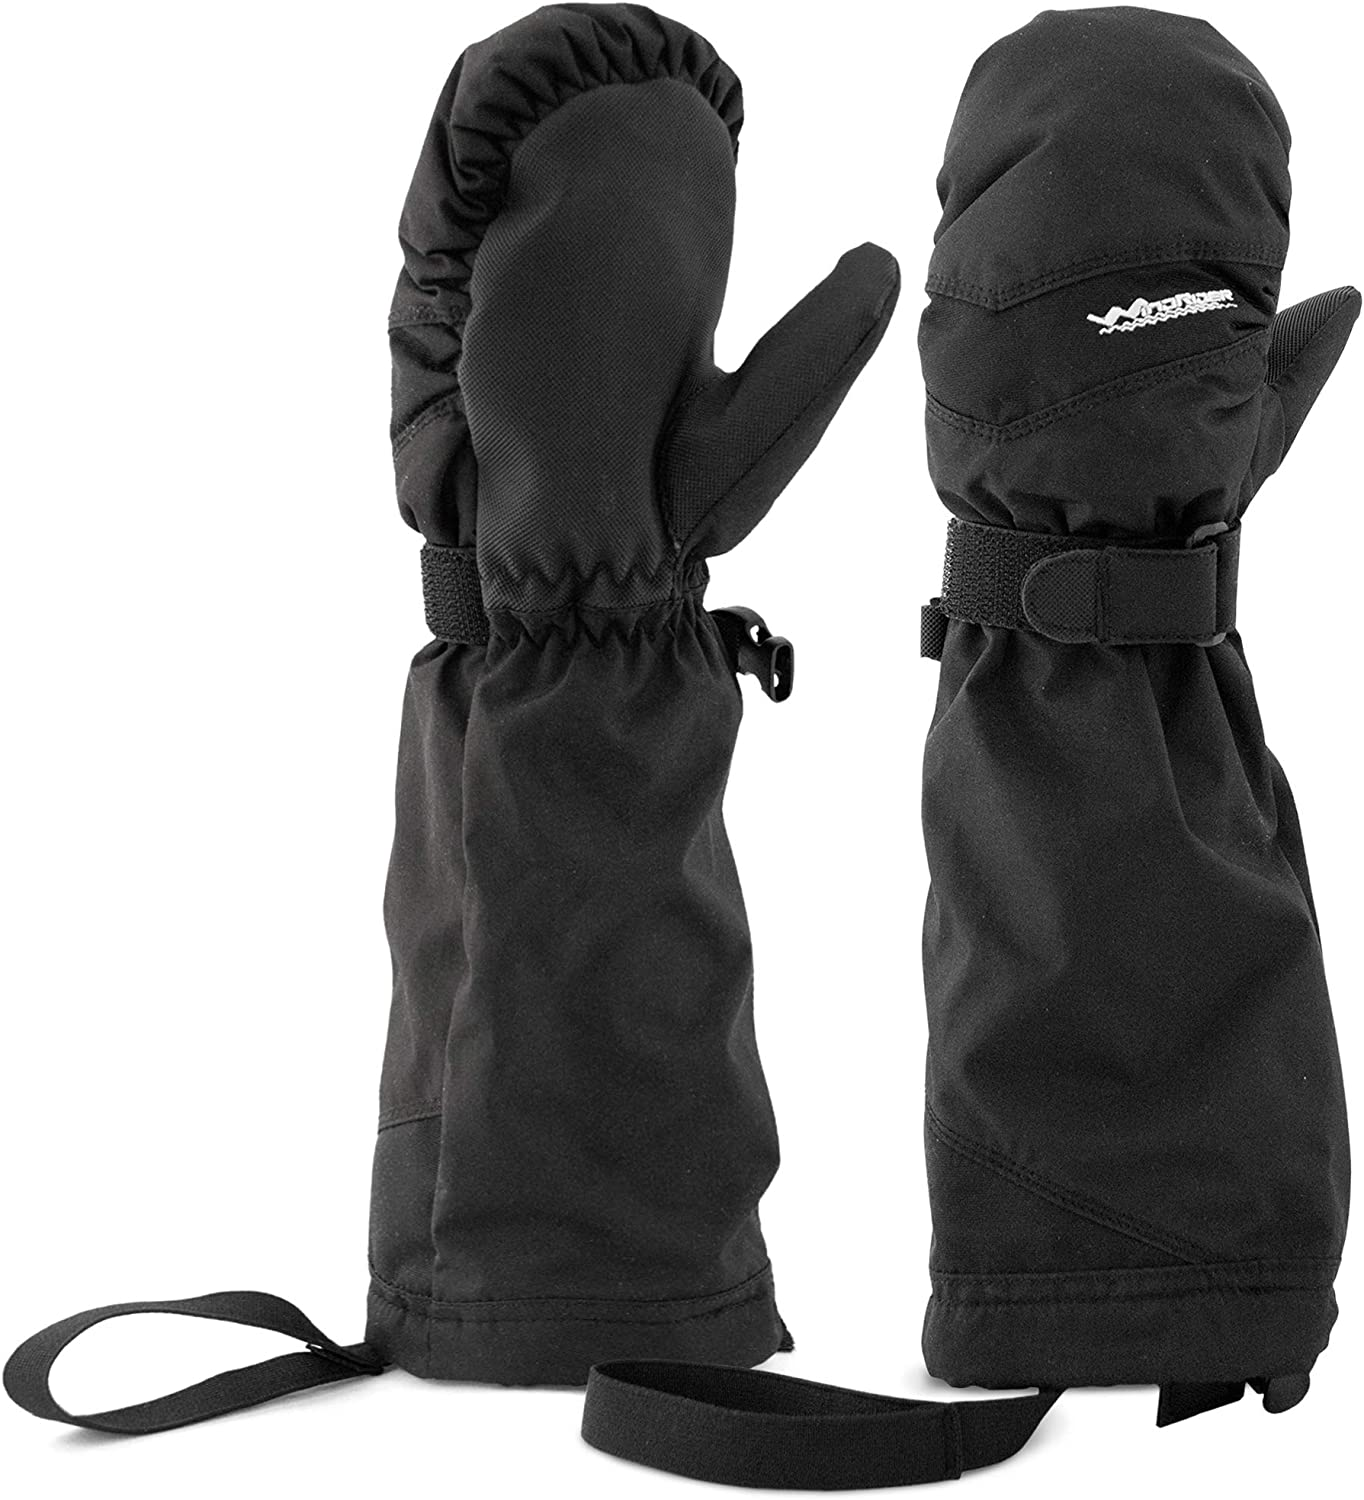 WindRider Toddler Waterproof Mittens | Elbow Length Cuff to Keep Snow Out | Wrist Leashes - No More Lost Mittens